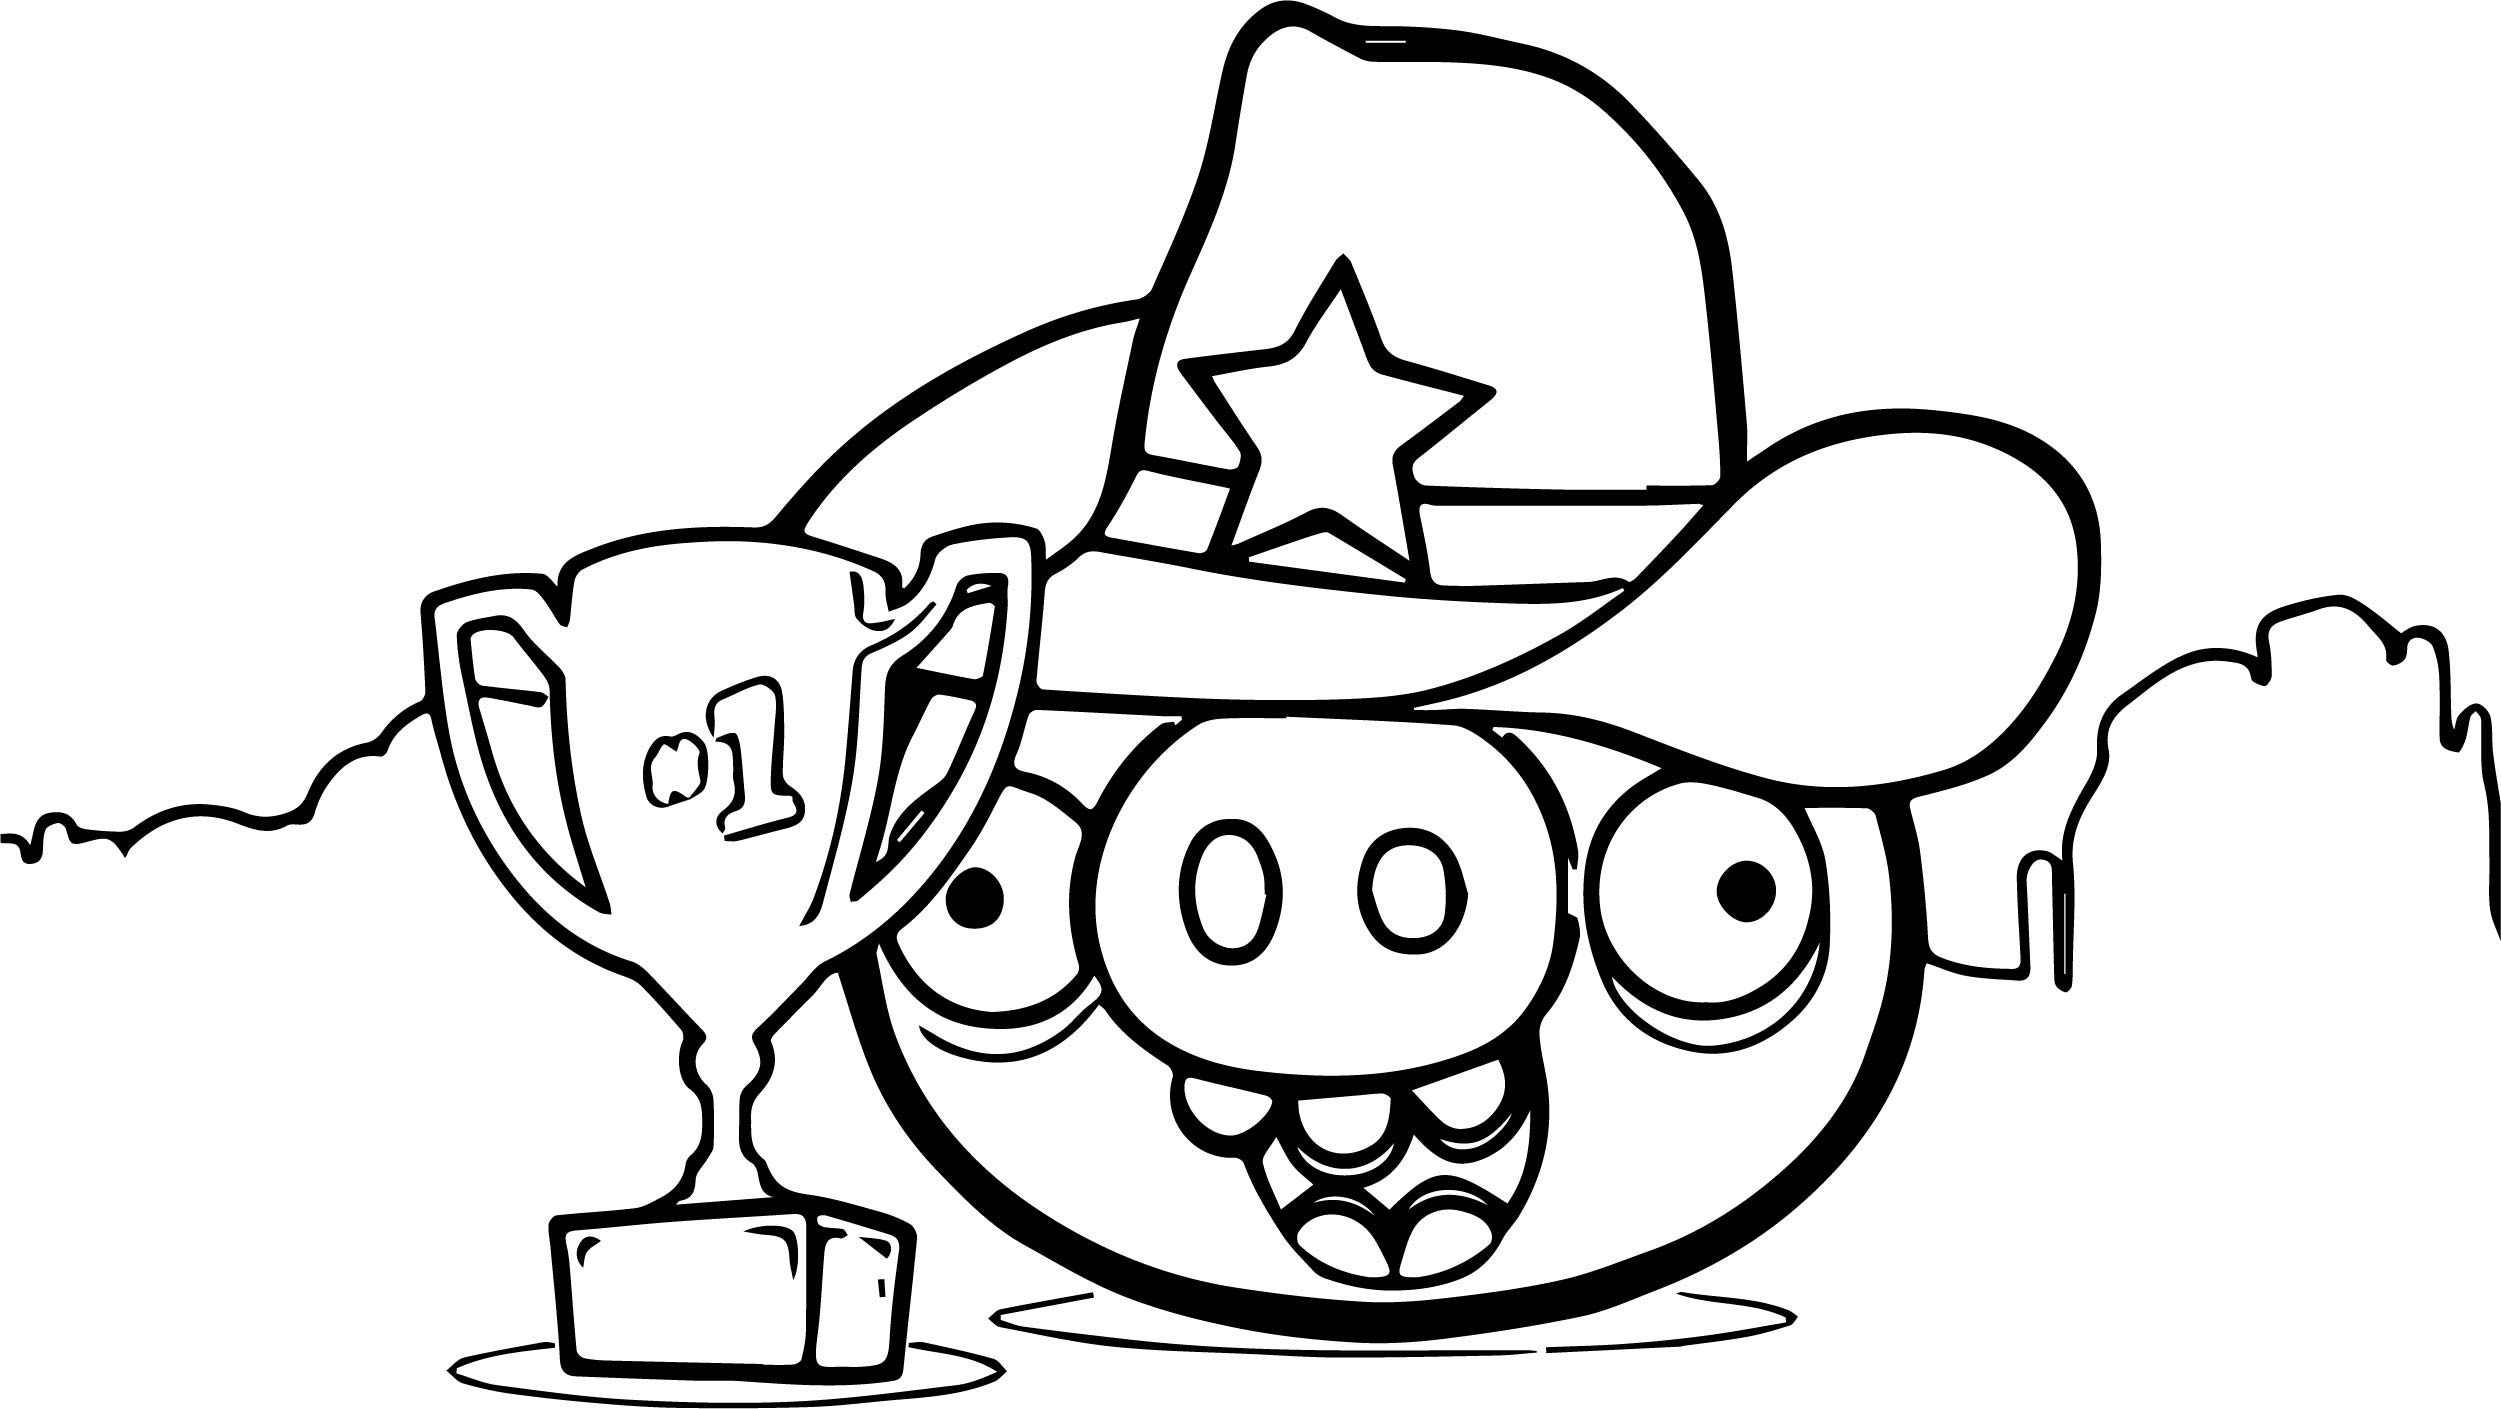 AngryBirds Nest Leaderboard Coloring Page